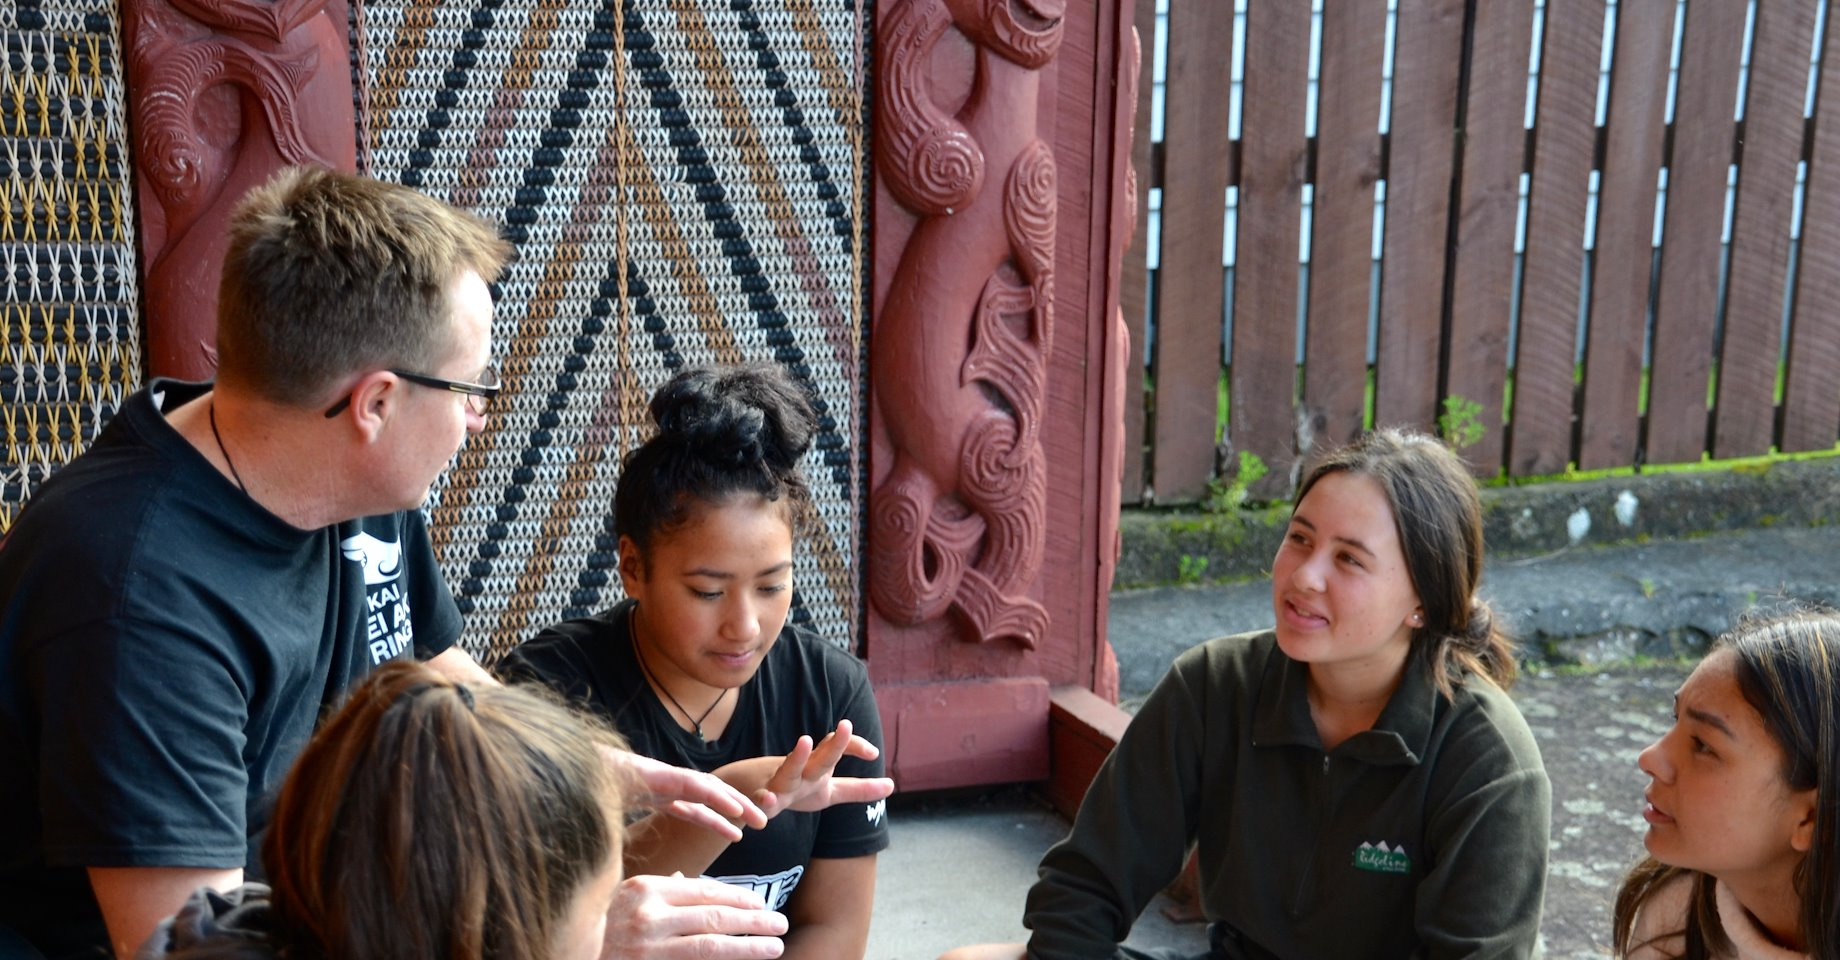 WIth support from He kai kei aku ringa, Young Enterprise ran a series of Business Challenges for rangatahi to develop their entrepreneurial skills and connect them with their local business community.